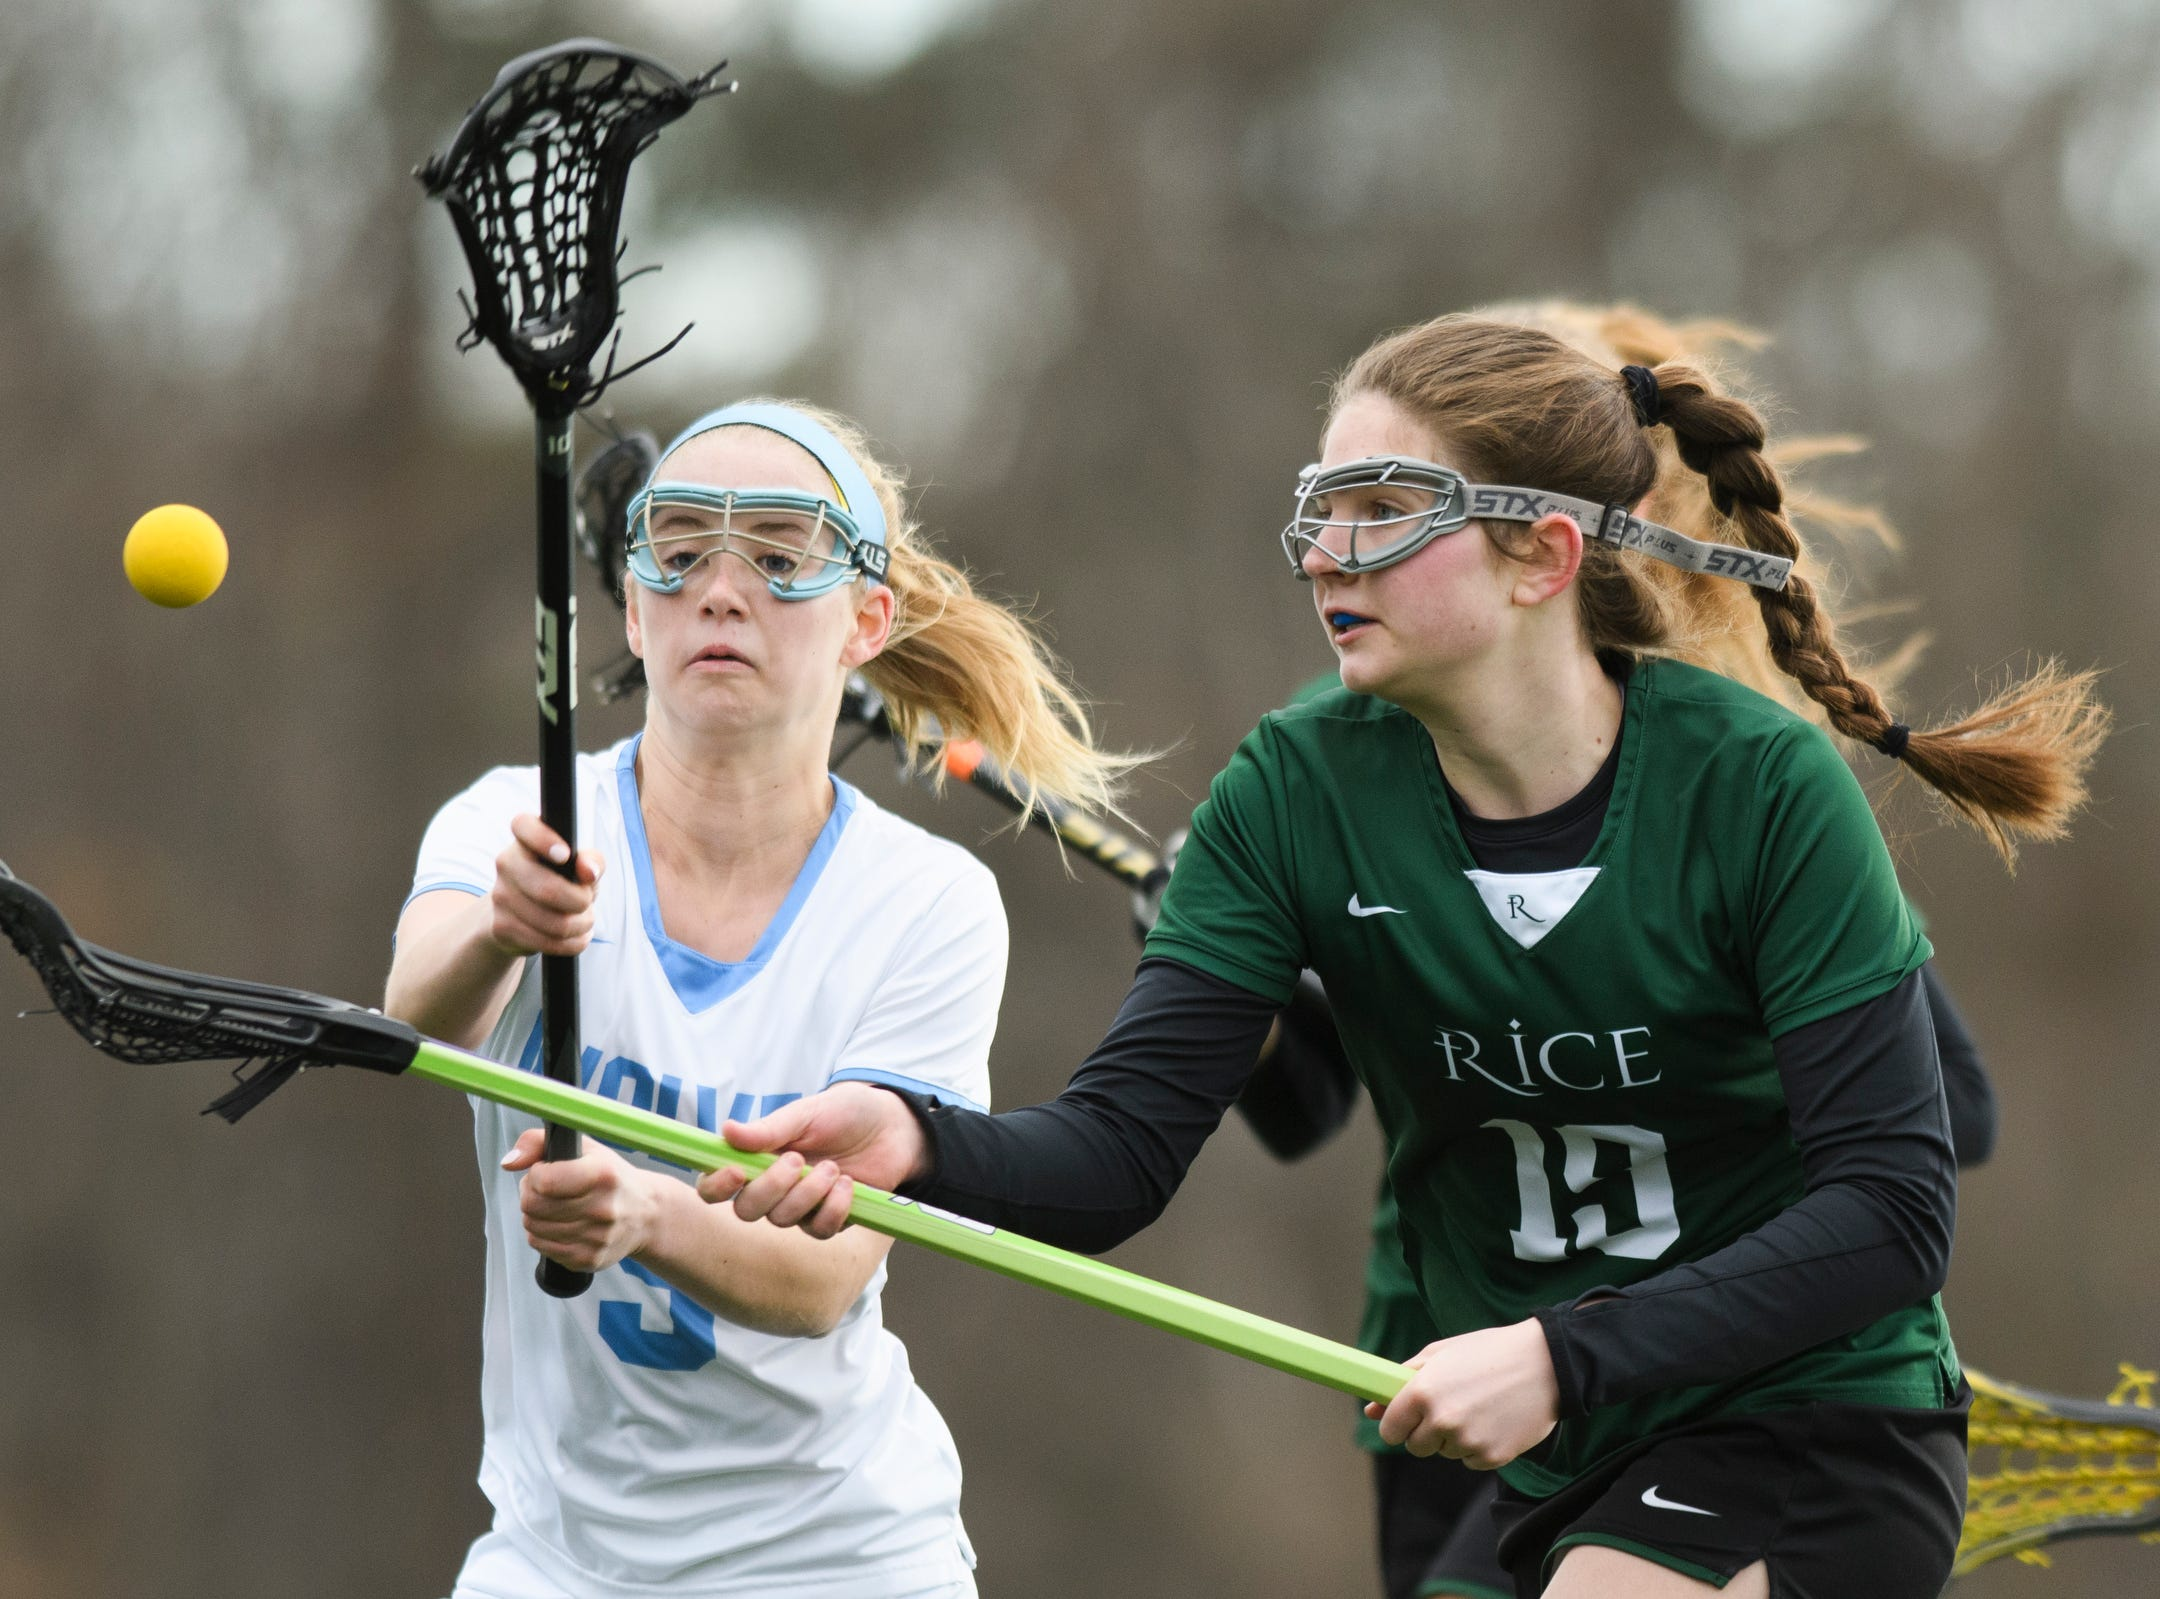 Rice's Sarah Holmes (19) looses the ball as she runs past South Burlington's Kaleigh Plumeau (9) during the girls lacrosse game between the Rice Green Knights and the South Burlington Wolves at South Burlington High School on Tuesday afternoon April 16, 2019 in South Burlington, Vermont.